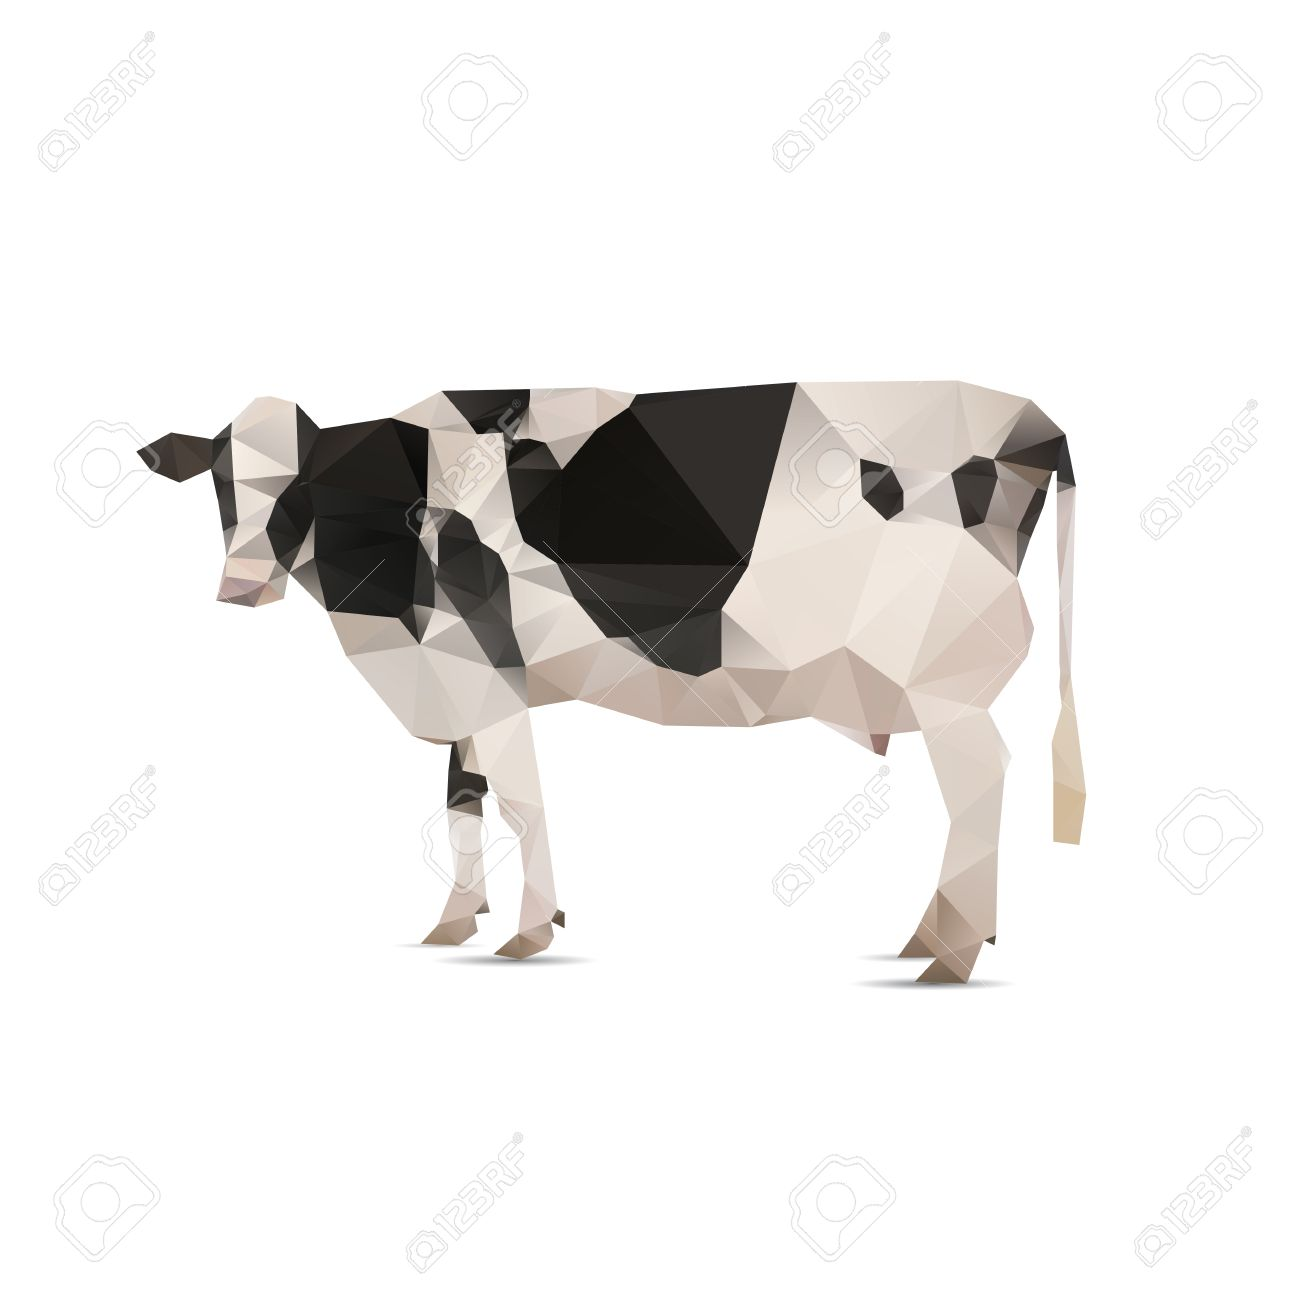 Illustration Of Origami Cow With Spots Isolated On White Background Stock Vector